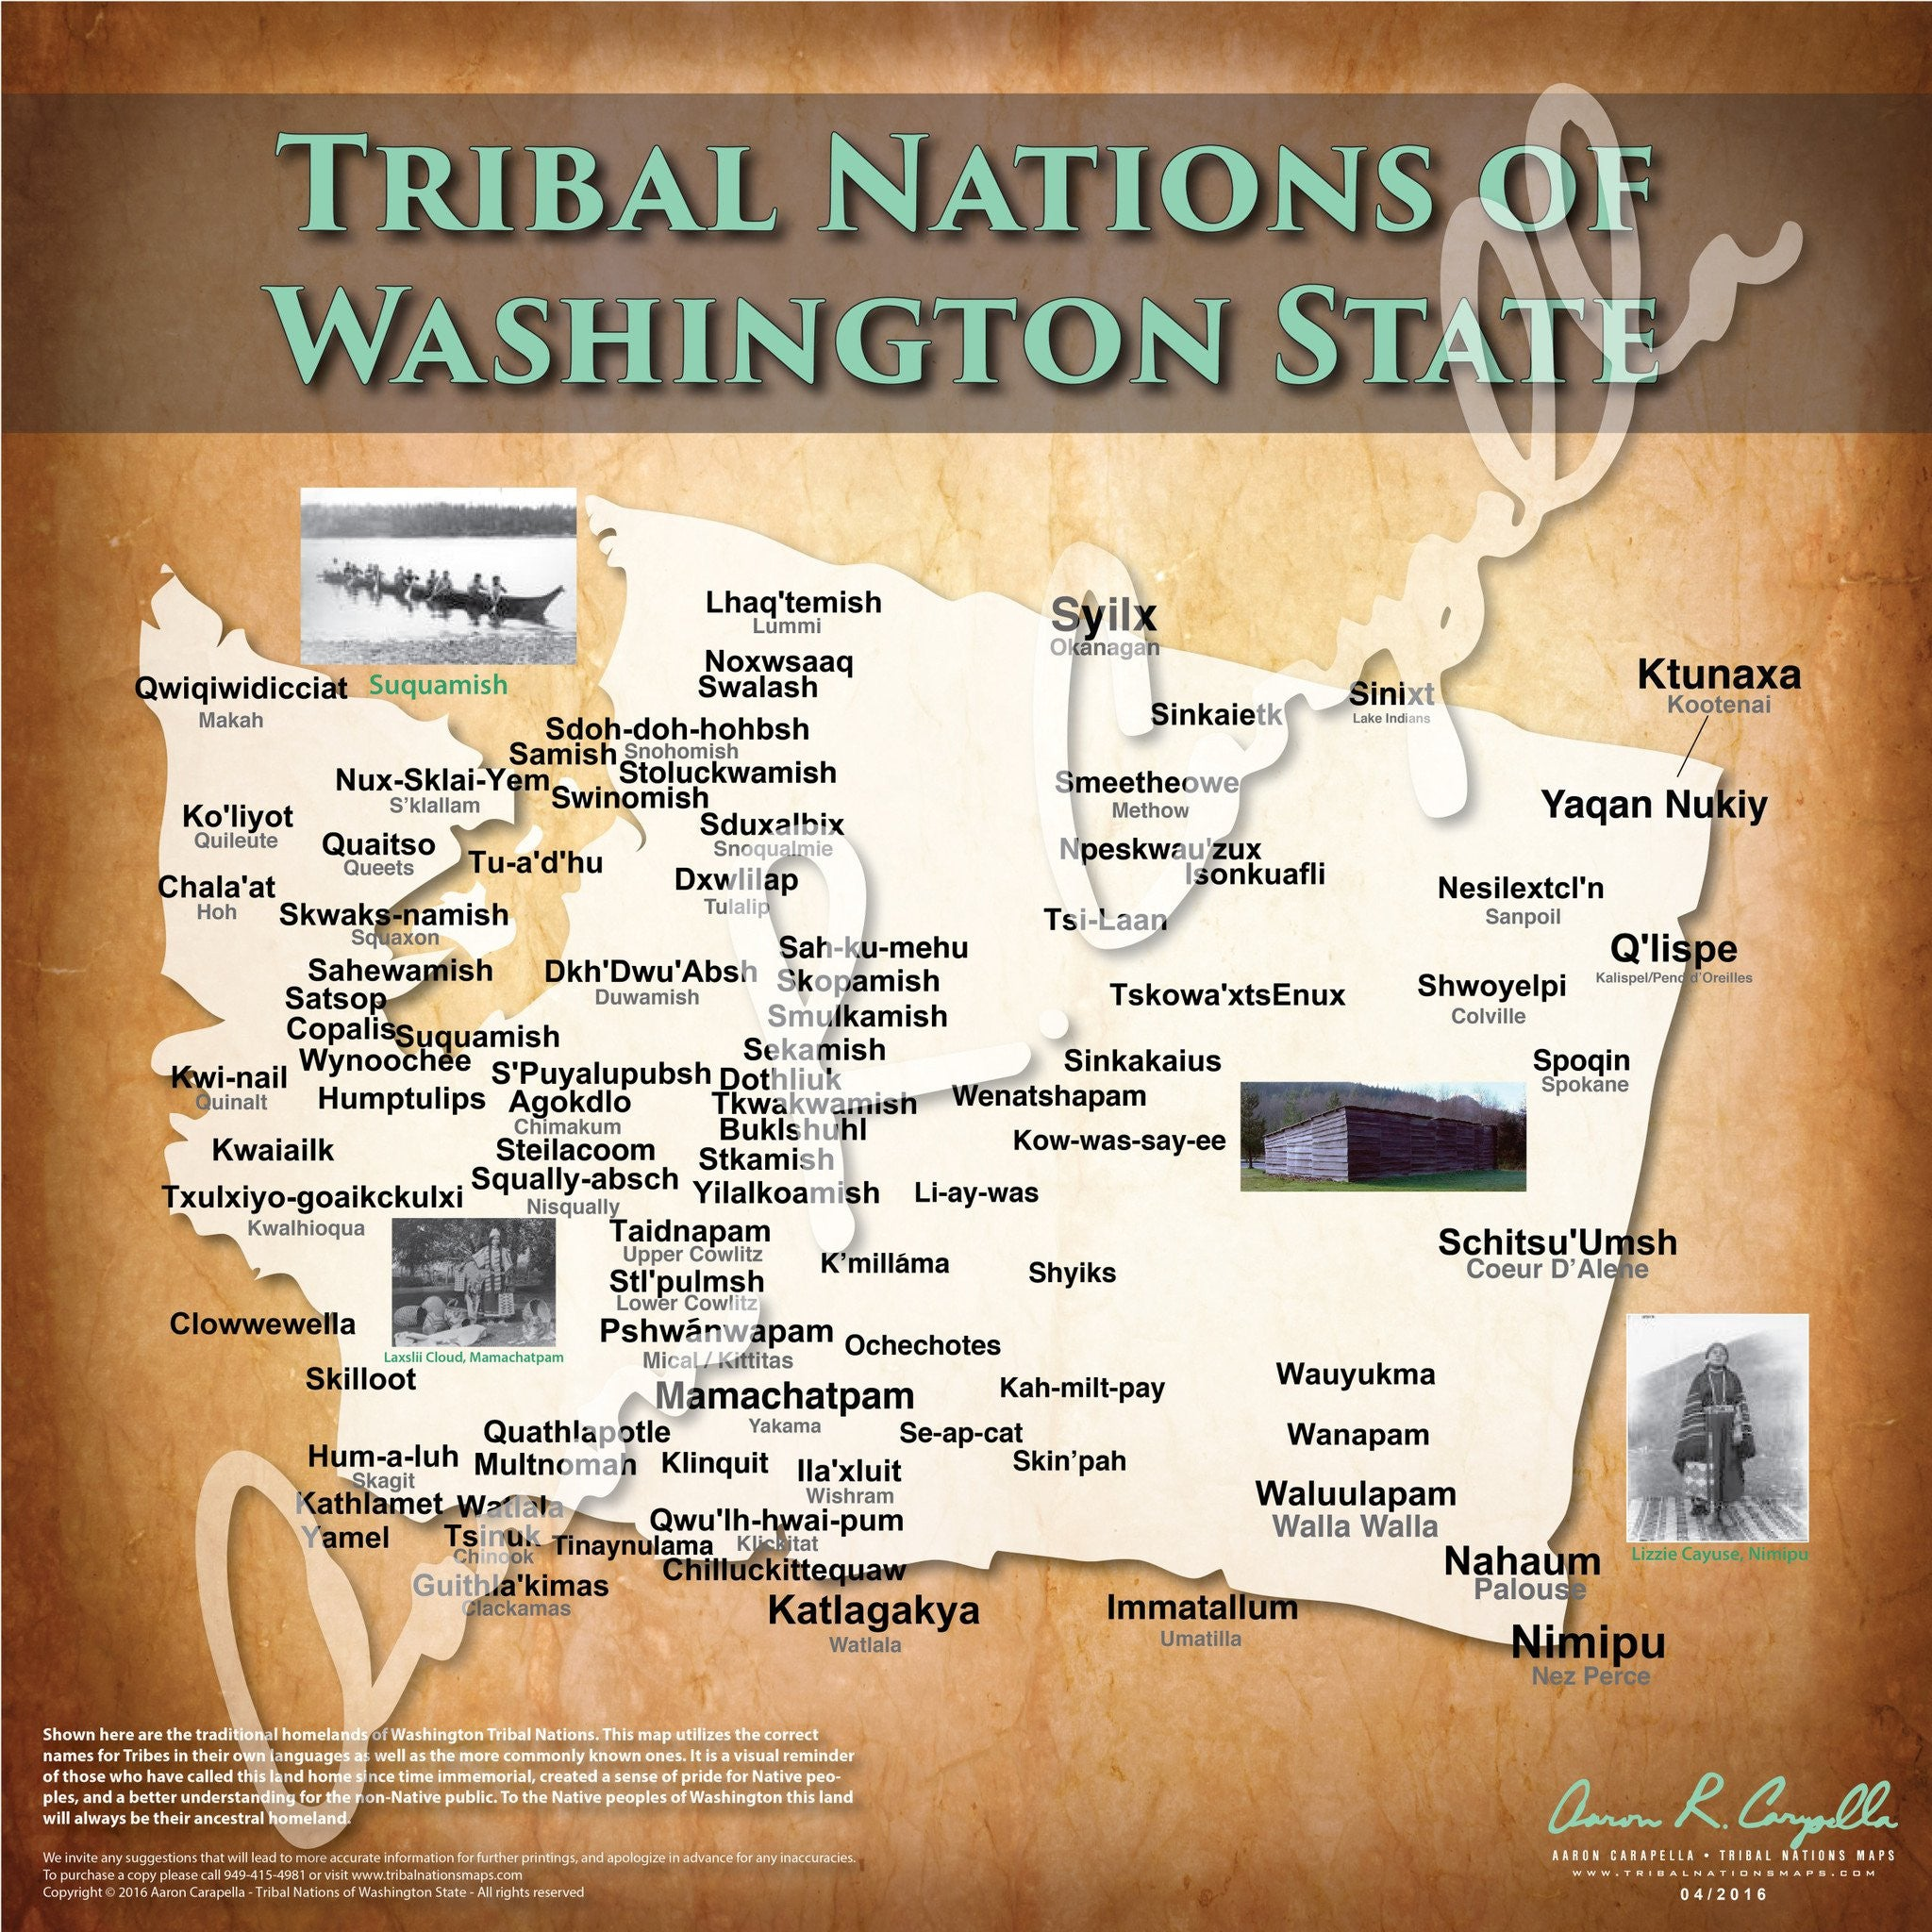 Tribal Nations of Washington State Map